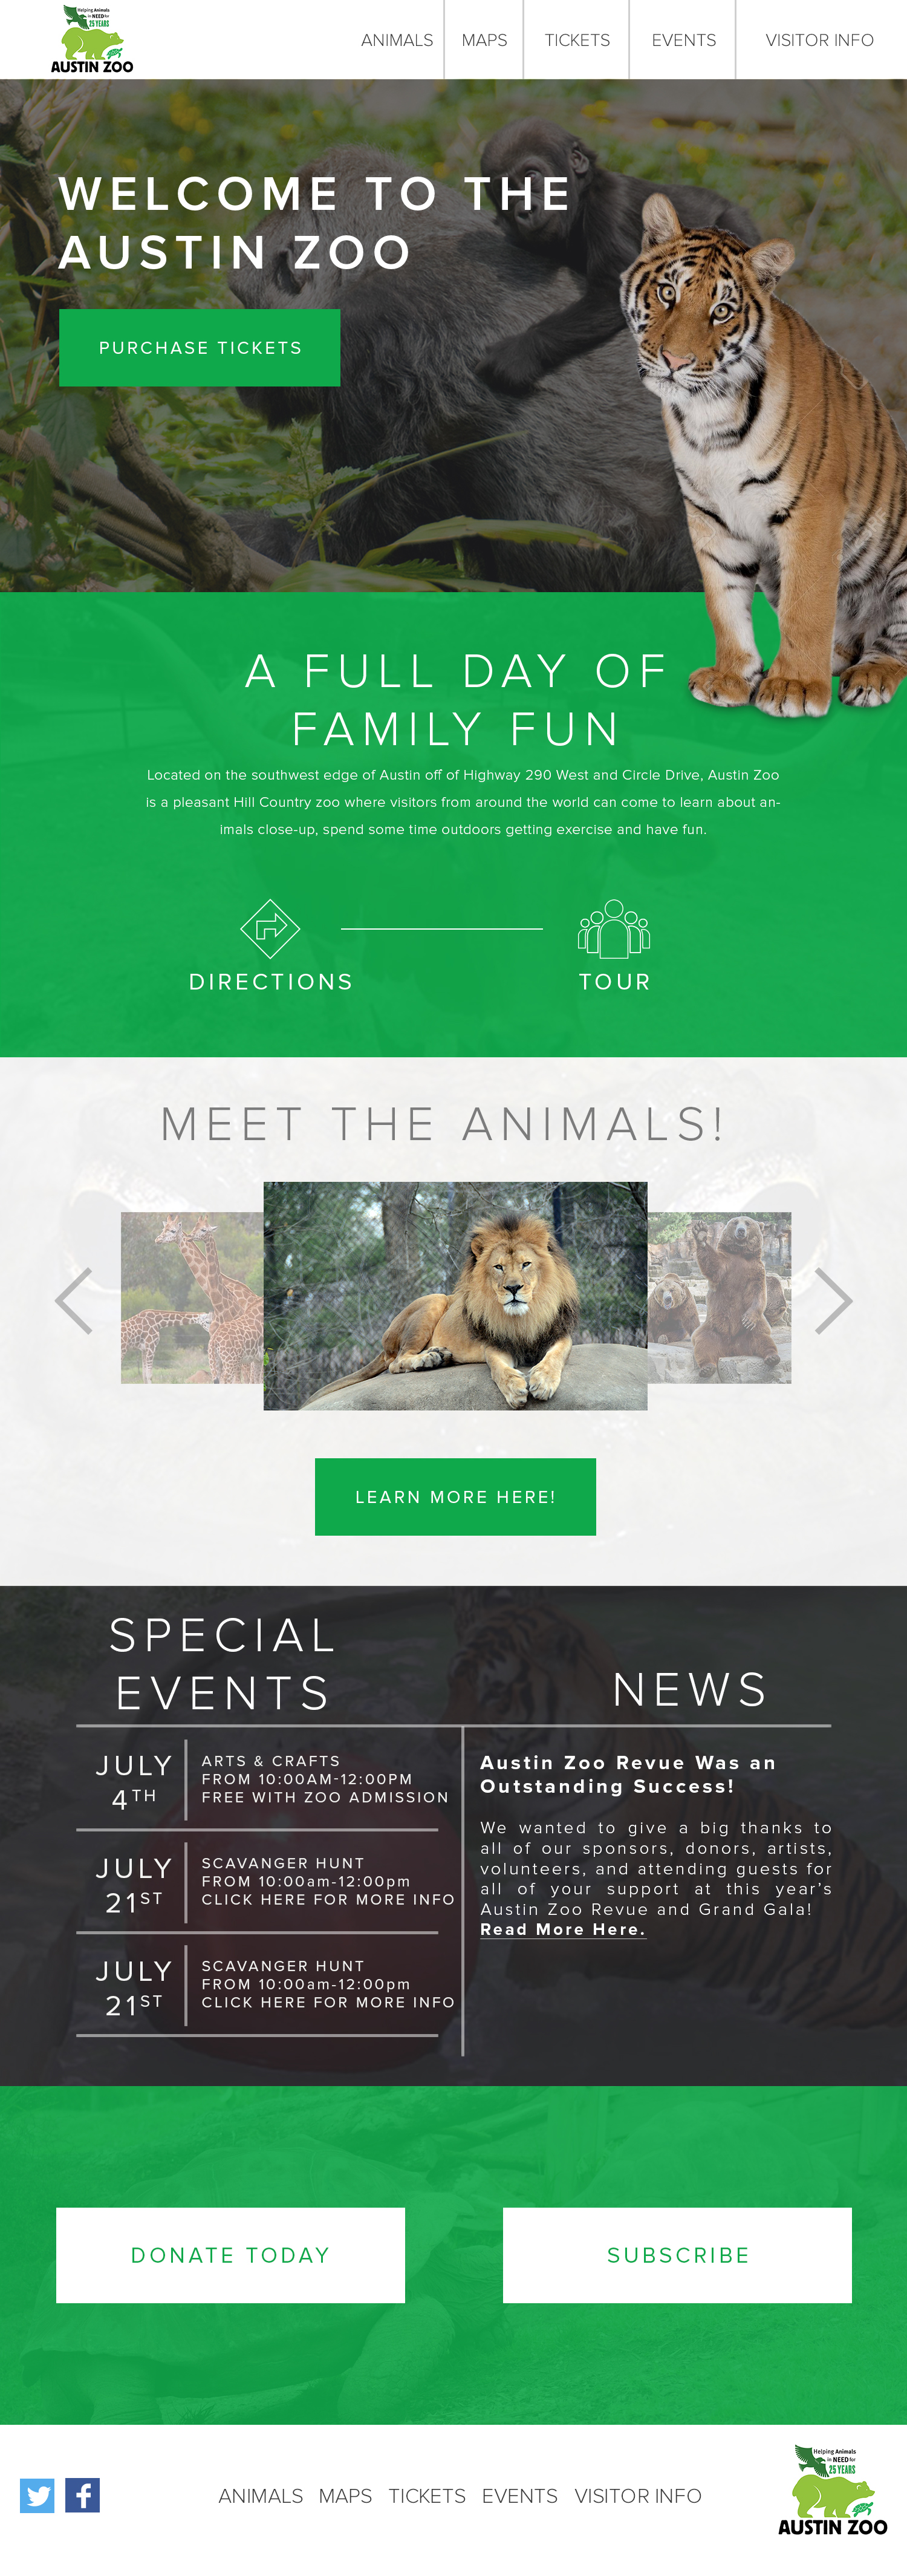 Austin Zoo Homepage Redesign